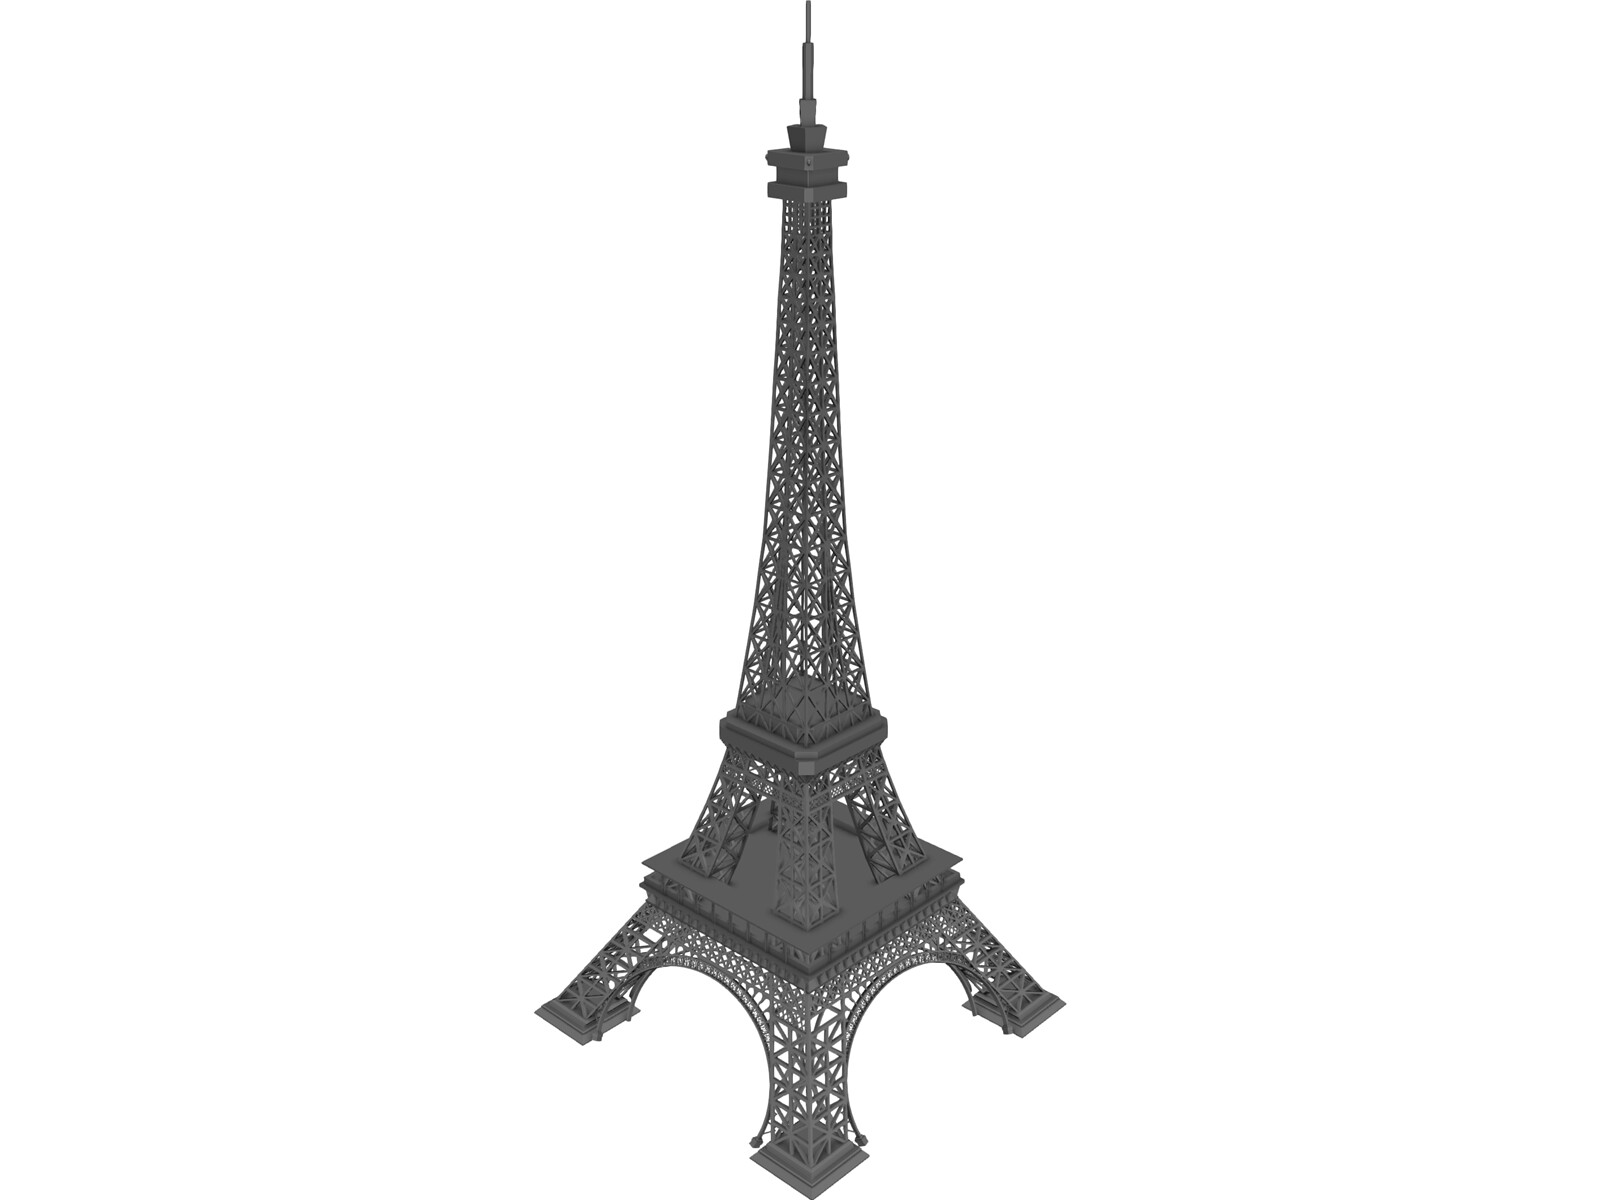 how to draw the eiffel tower in 3d